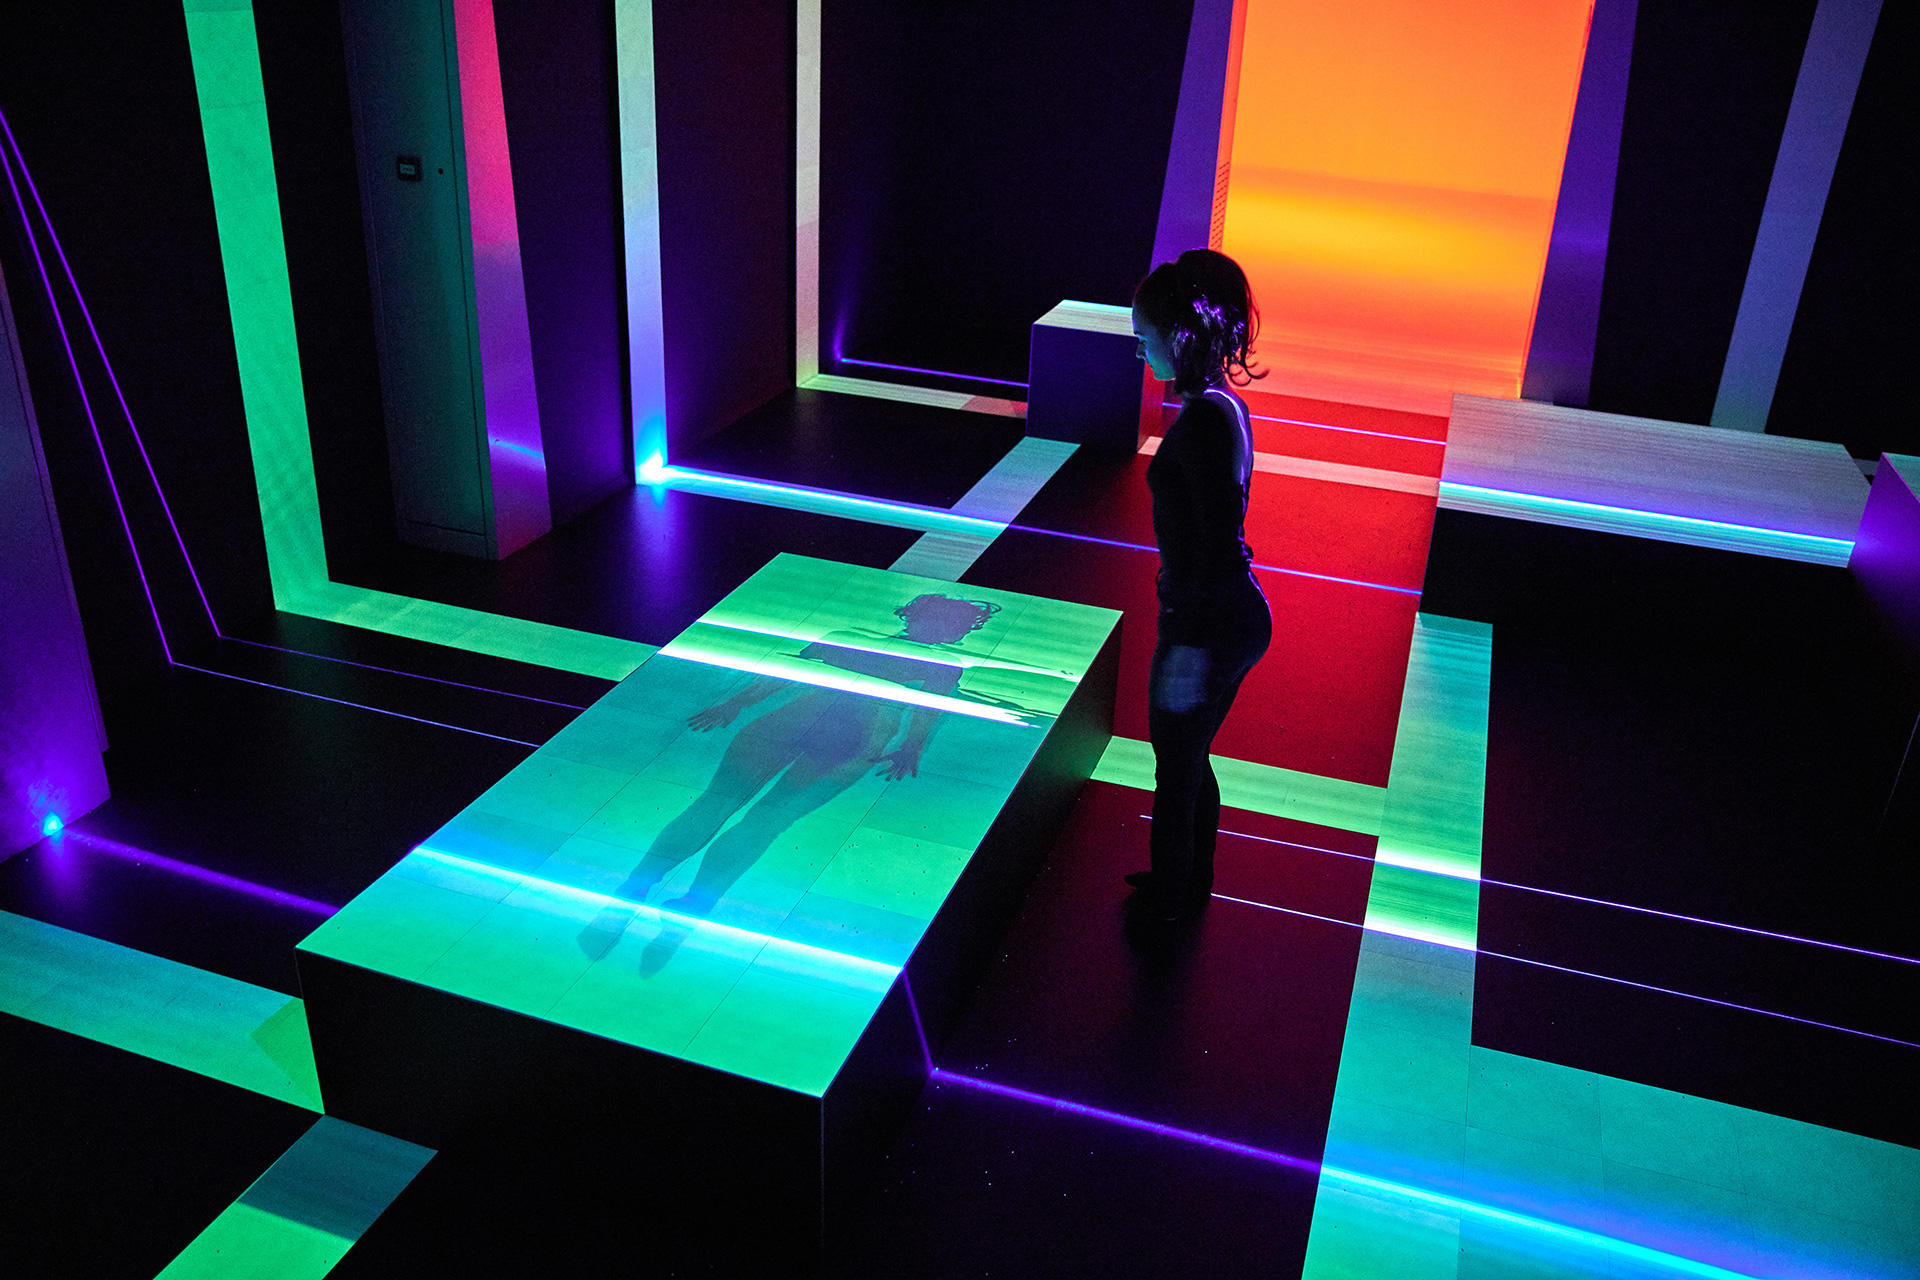 As the light is blocked by visitors, it leaves traces and prints on the light sensitive floor | Presence | Daan Roosegaarde | Groninger Museum| STIRworld